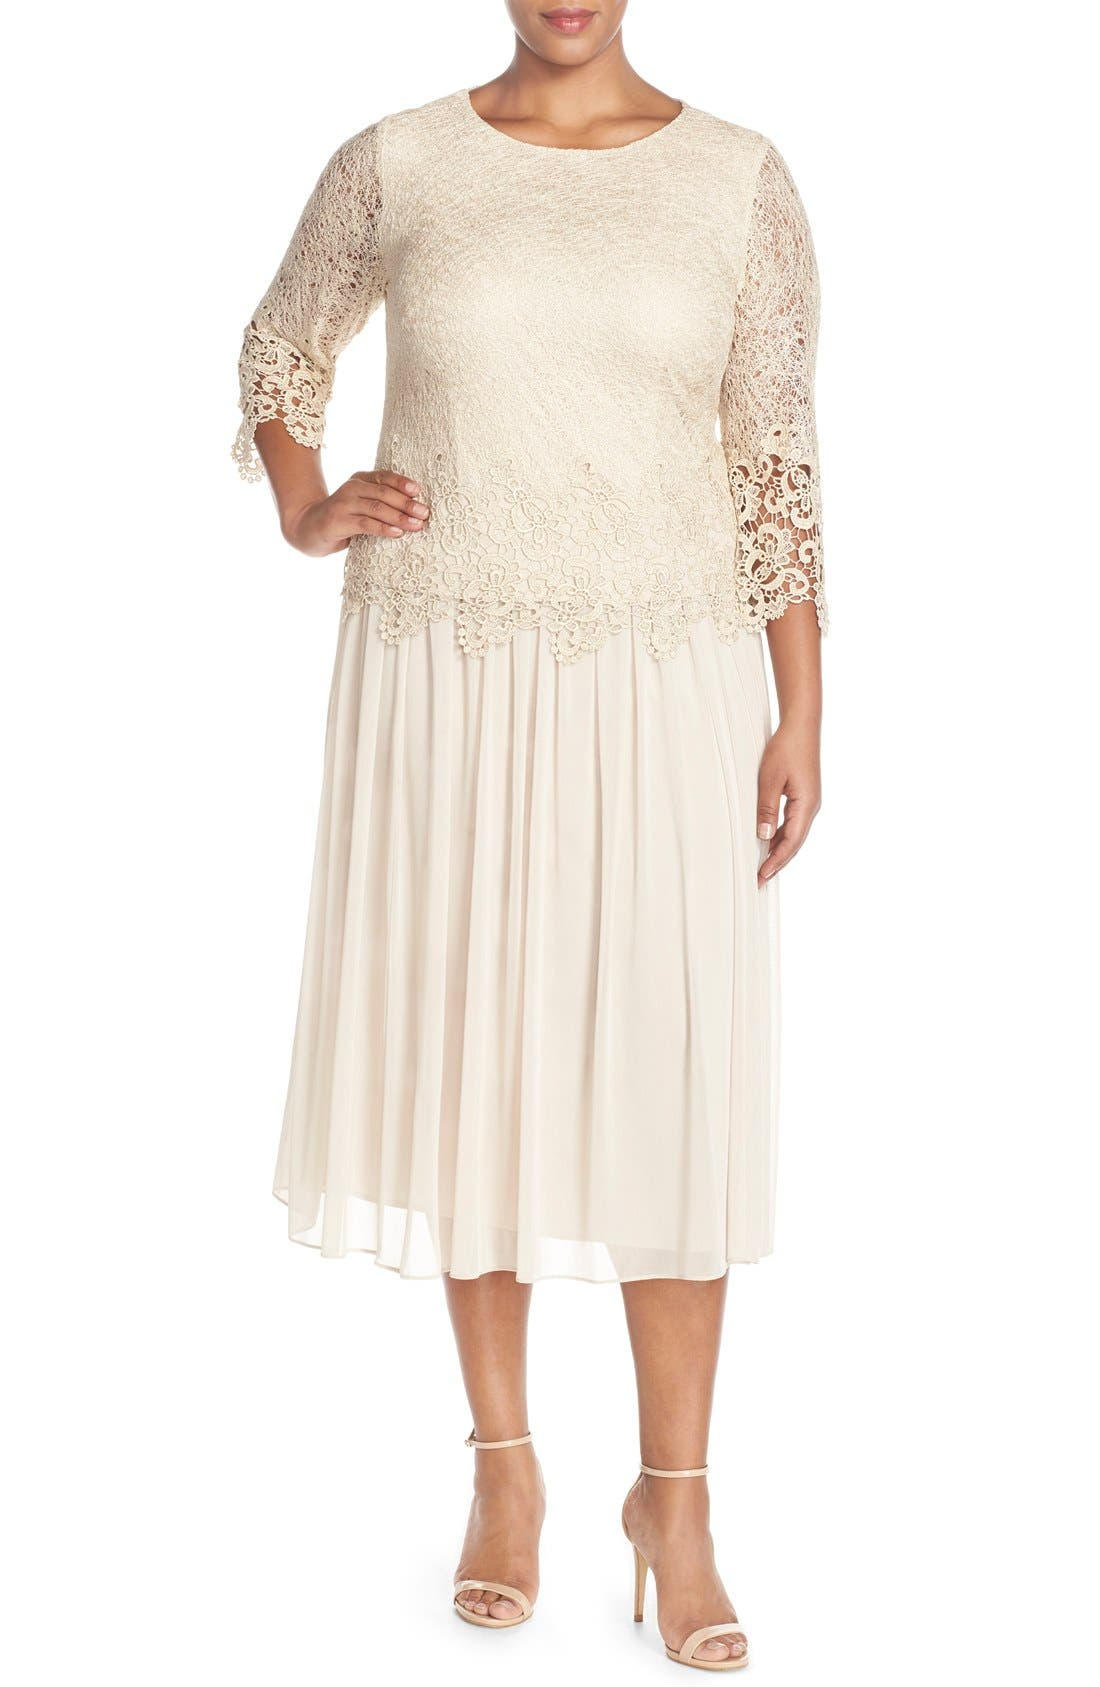 ALEX EVENINGS Lace & Chiffon Tea Length Dress